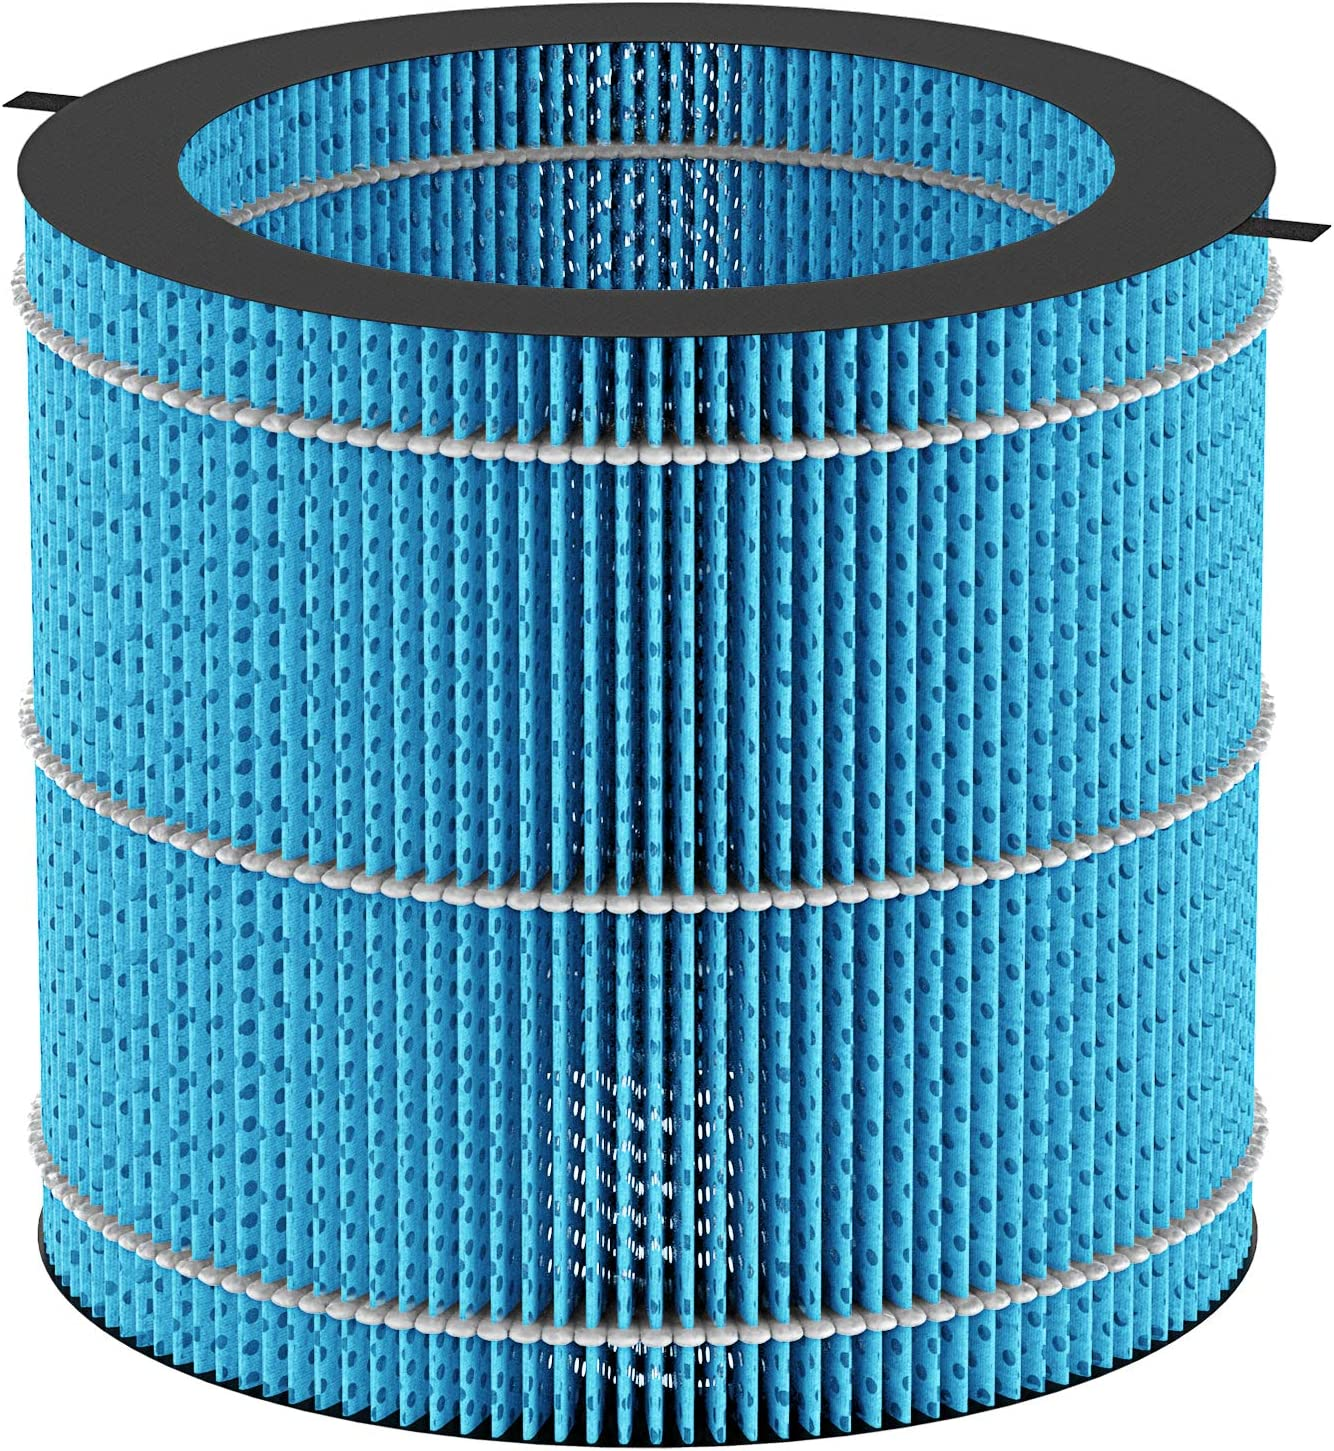 Afloia Humidifier Wicking Filter, Wet Curtain, Compatible with MIRO PRO-Air Purifier & Humidifier